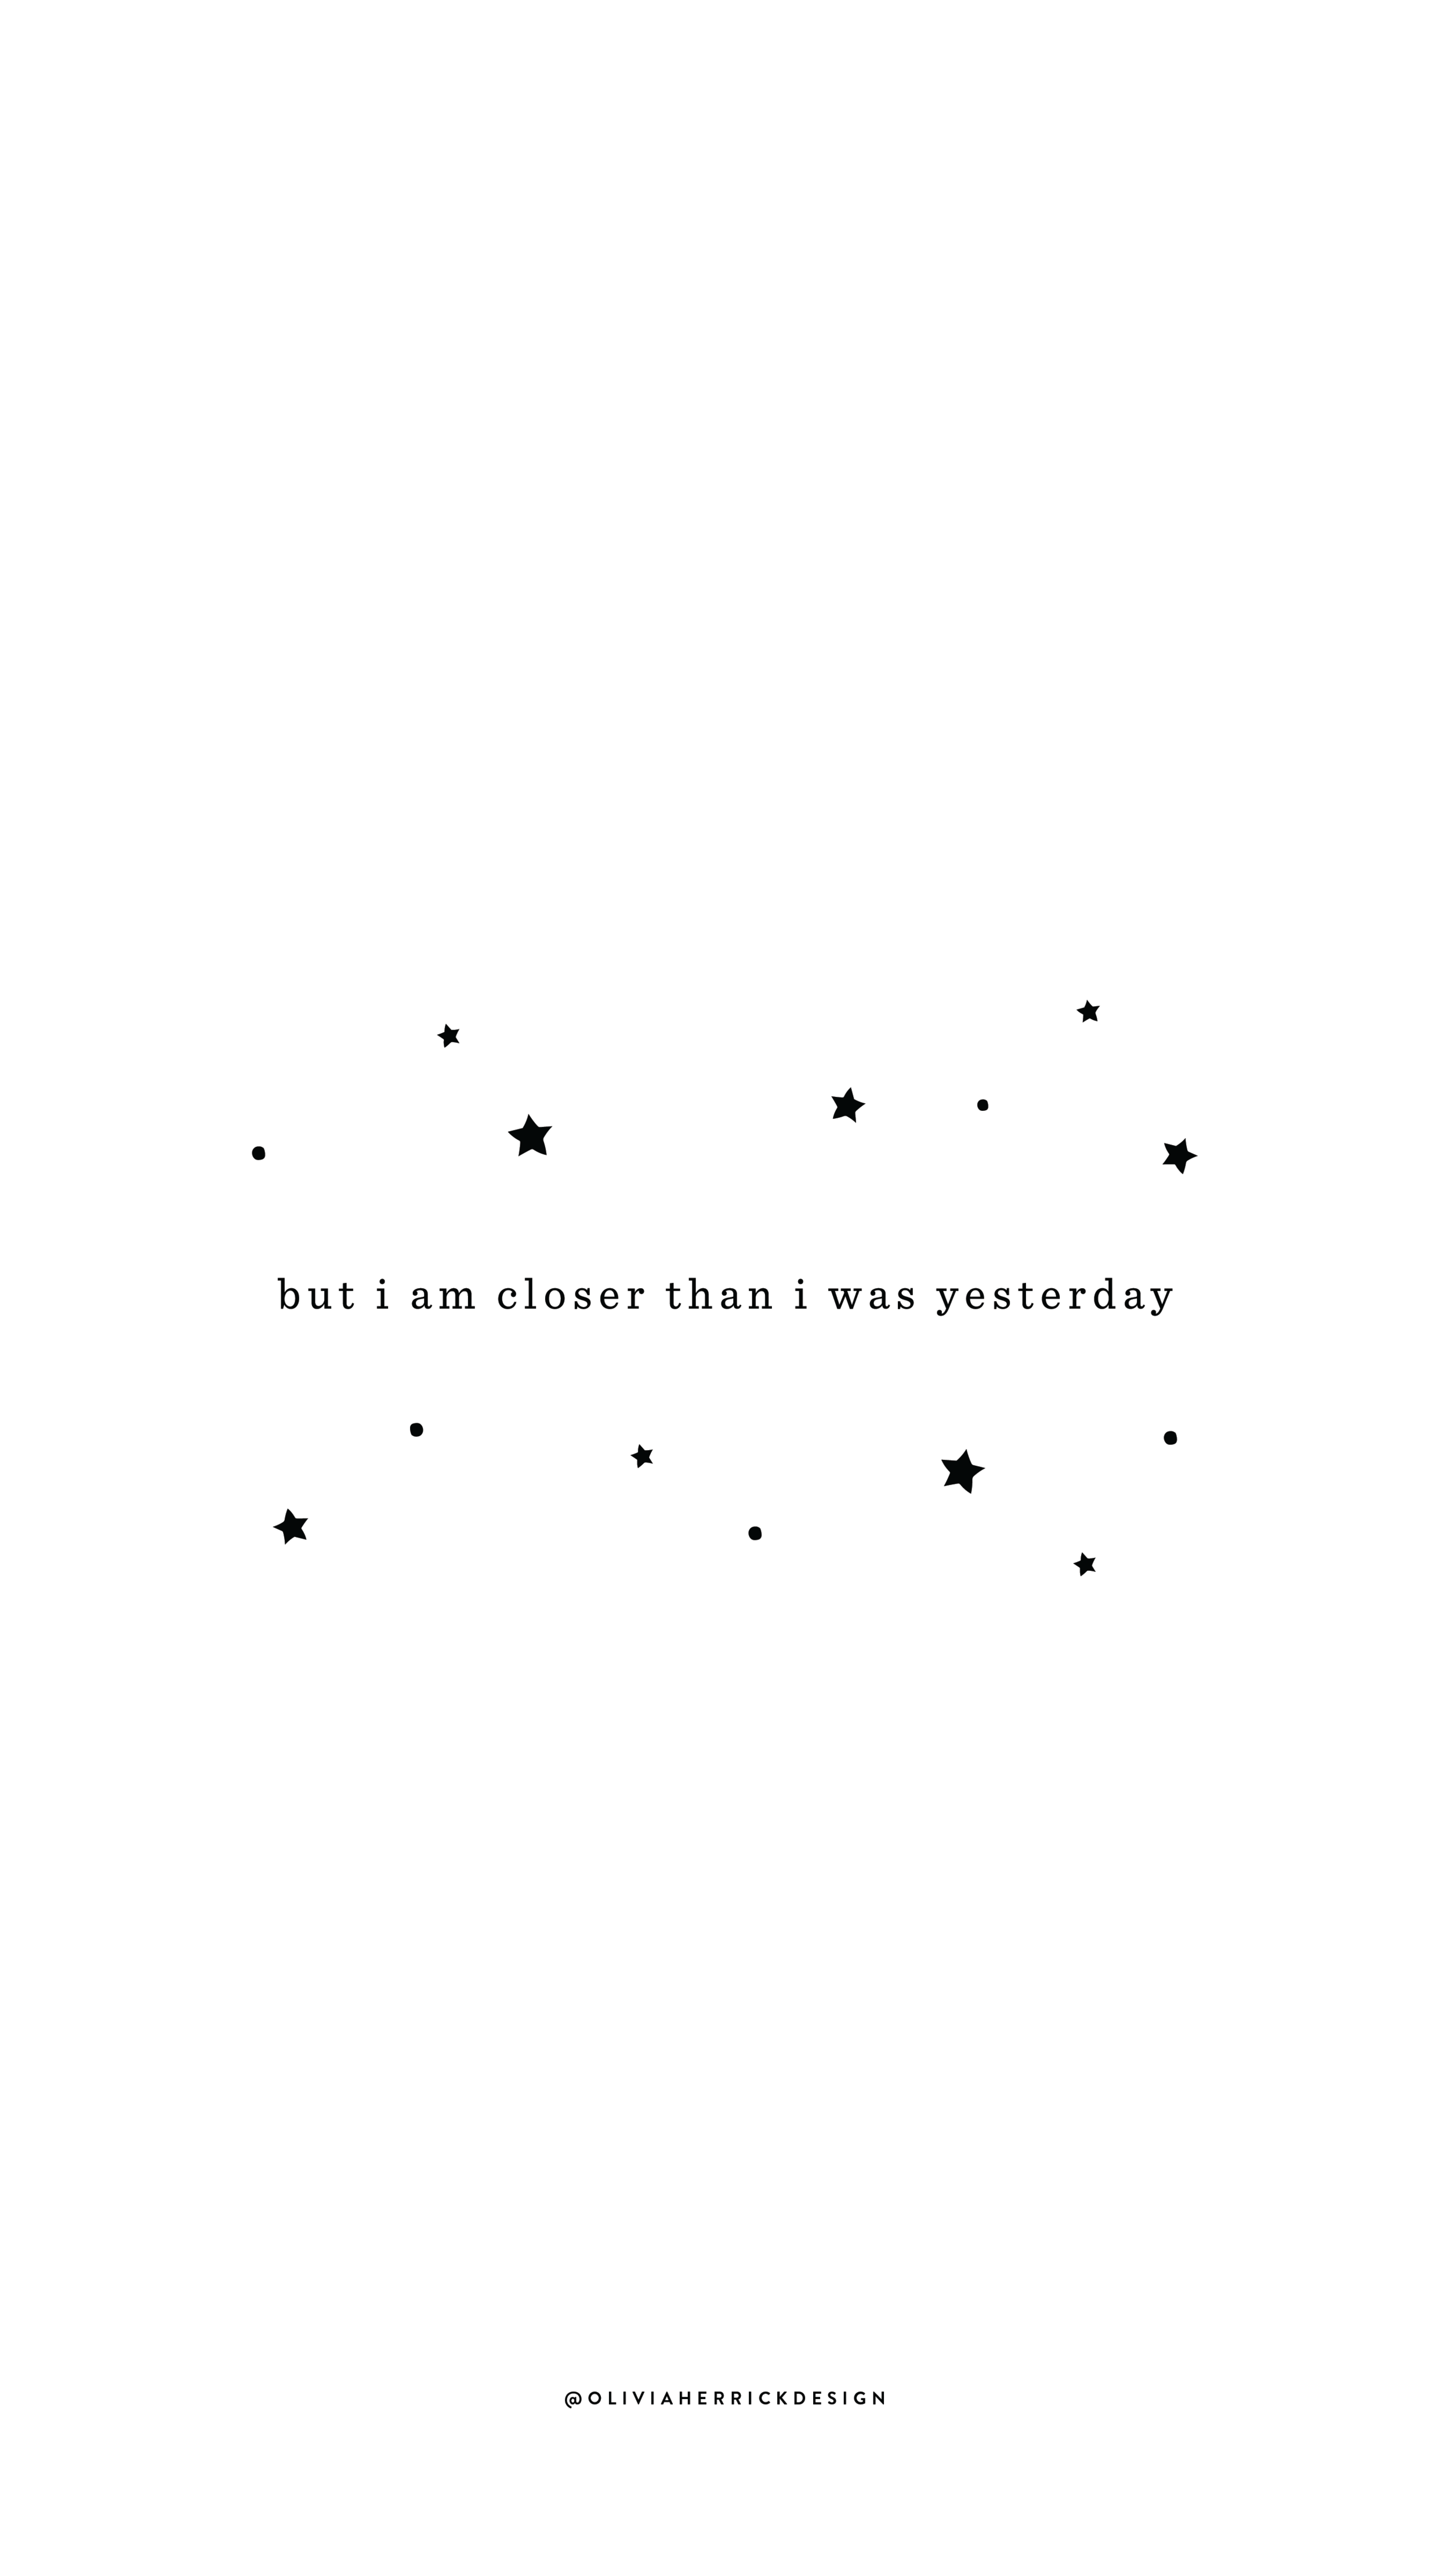 olivia-herrick-design-closer-than-yesterday-2.png